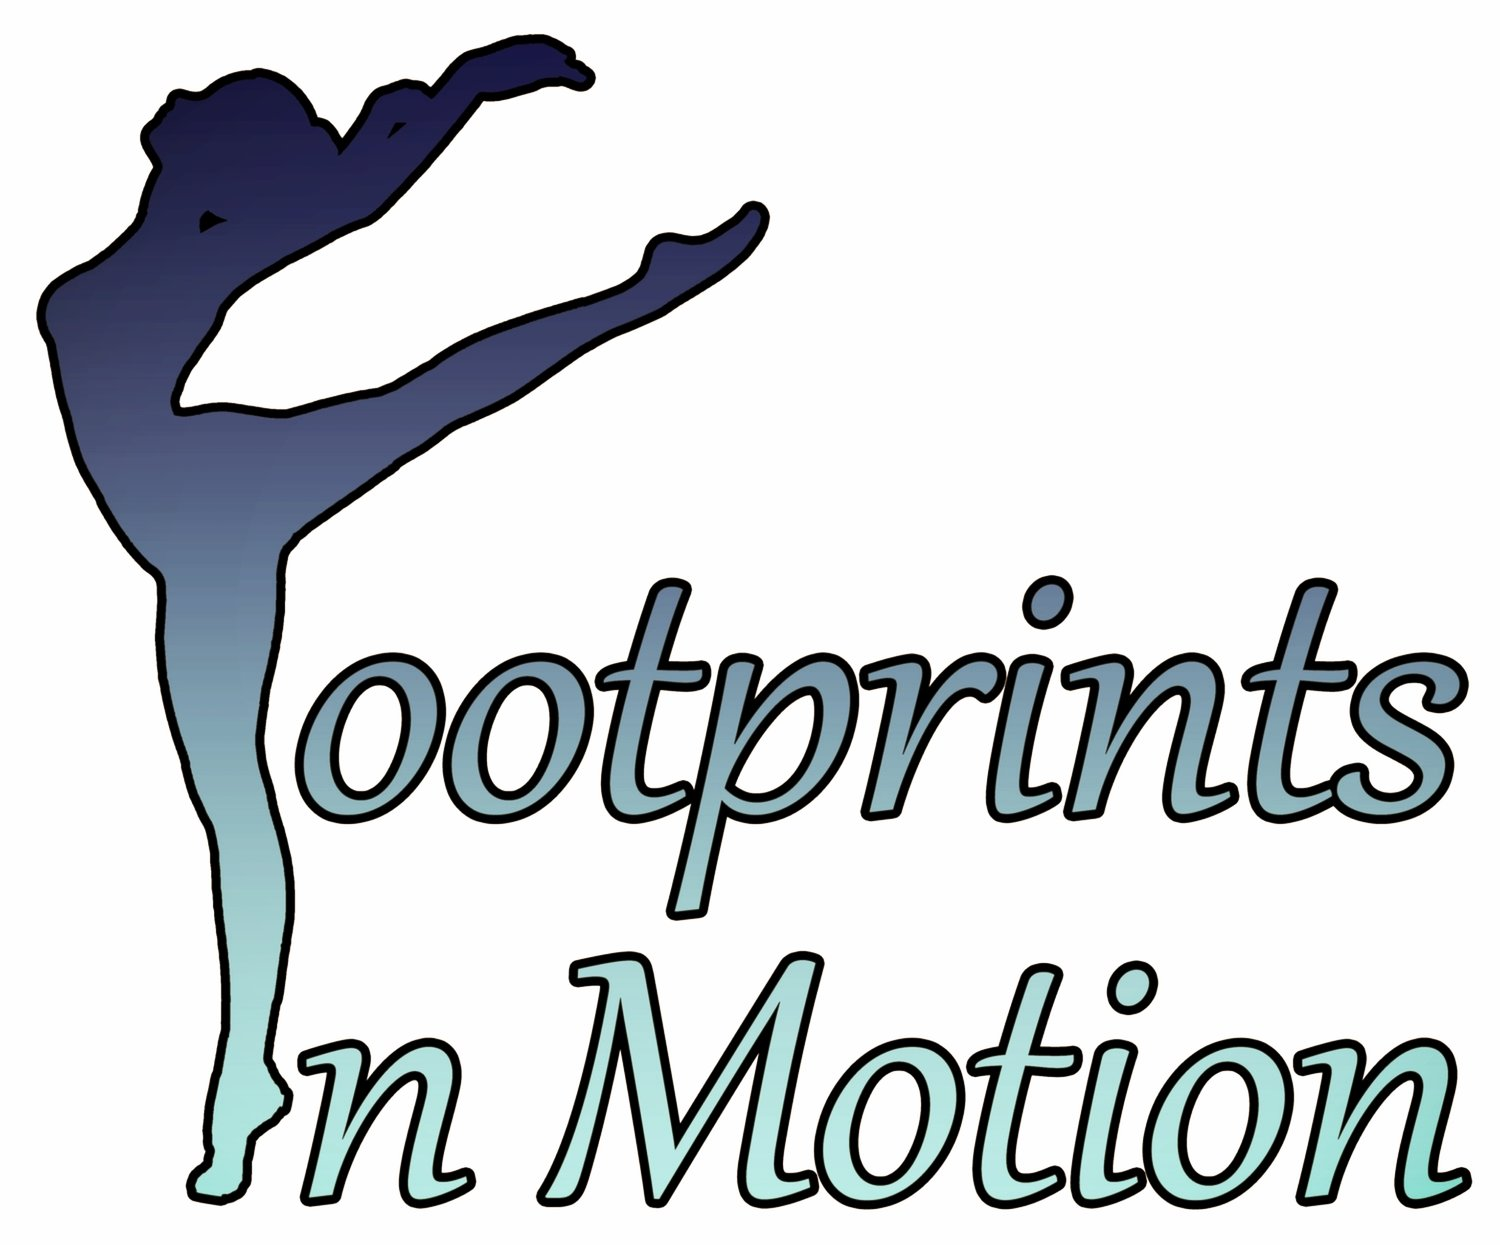 Footprints In Motion